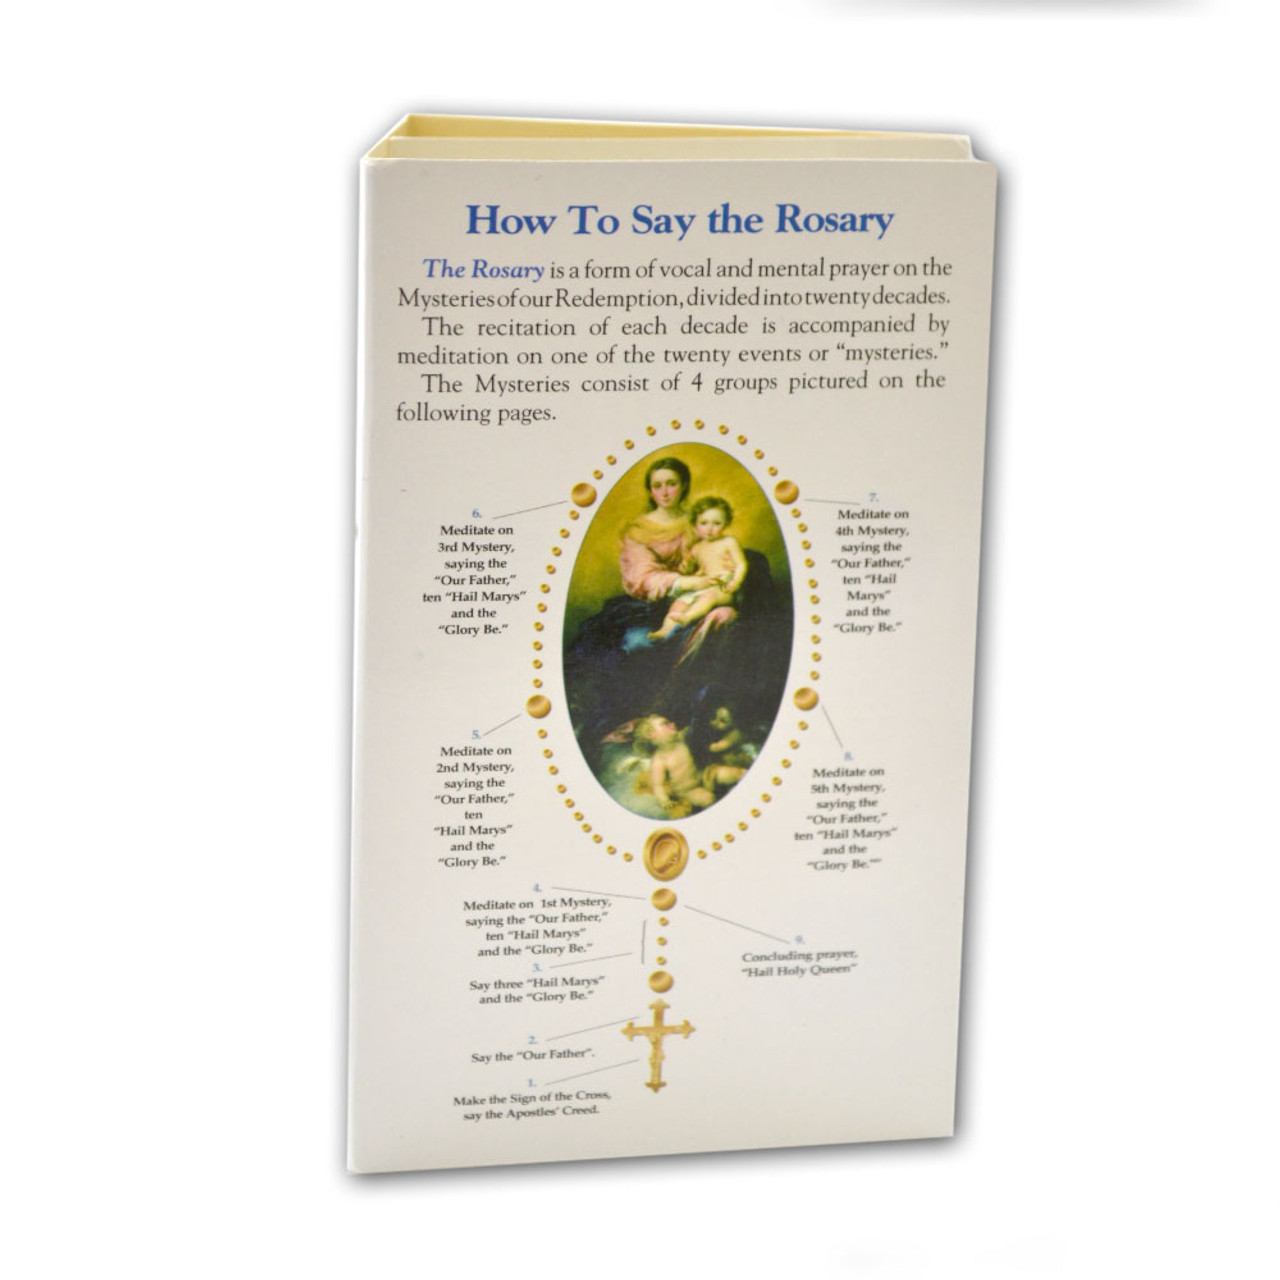 How To Say the Rosary 8-page Pamphlet